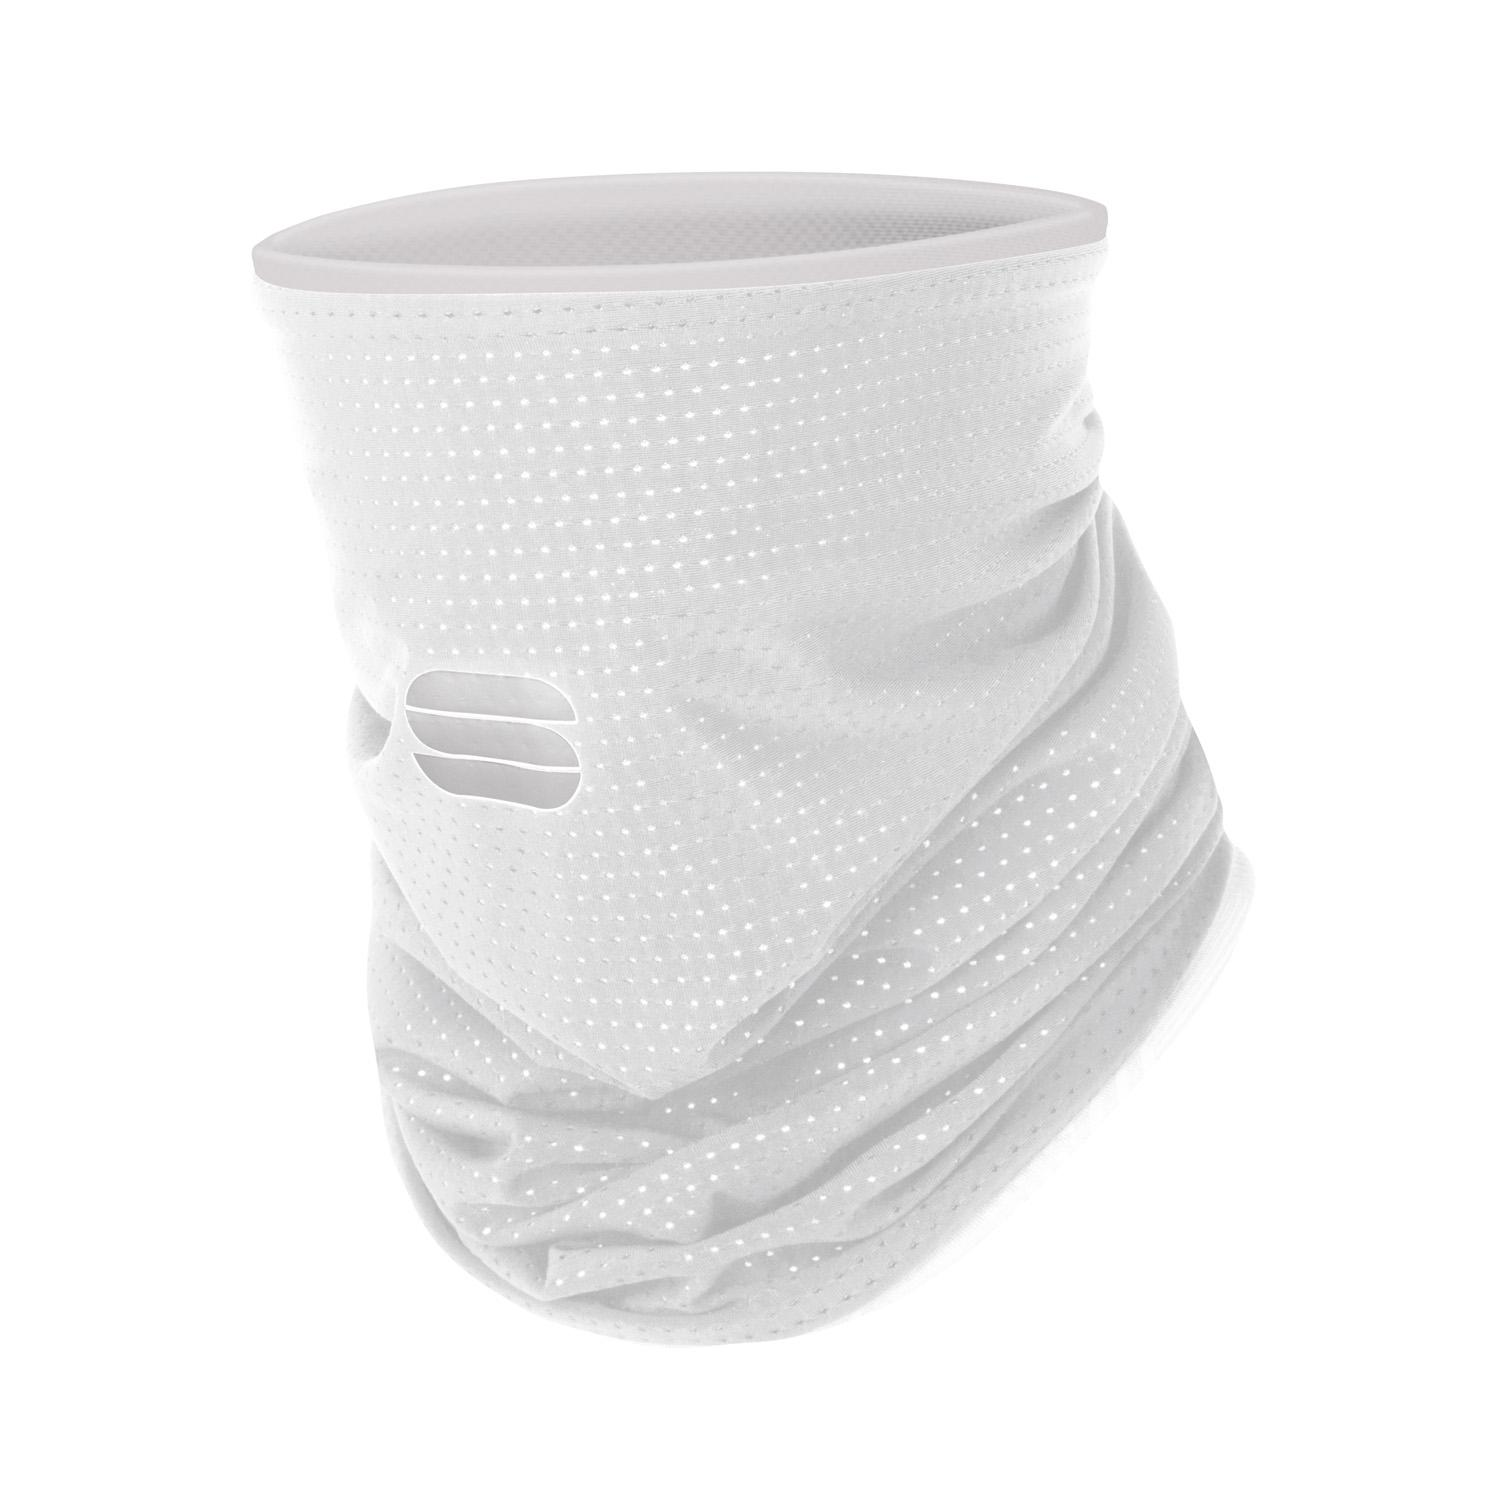 Sportful Buff - Bandana Dames Wit - WOMAN NECK WARMER WHITE